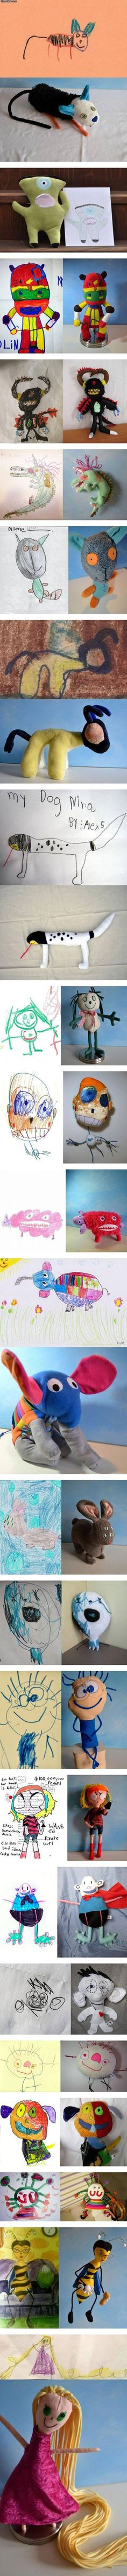 kids drawn made real